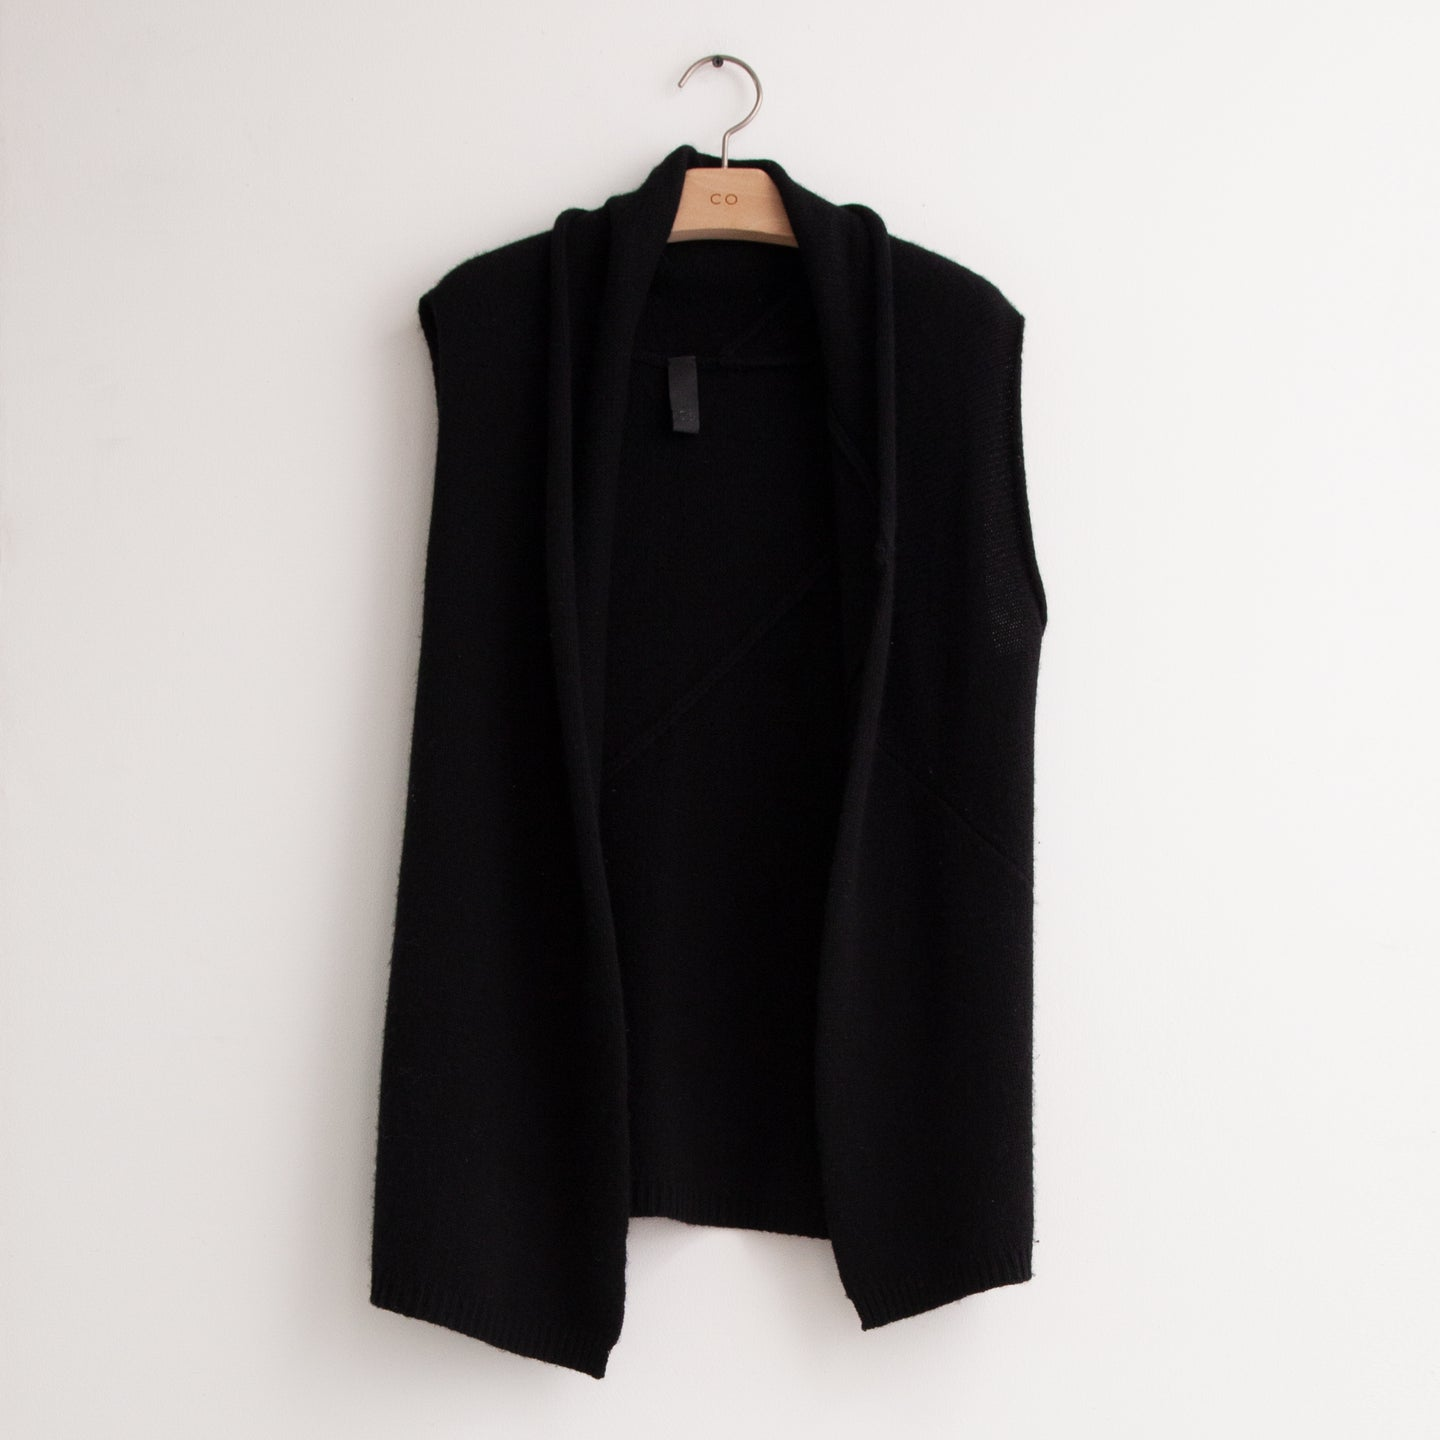 Relaxed fit knit vest in black cashmere - CO